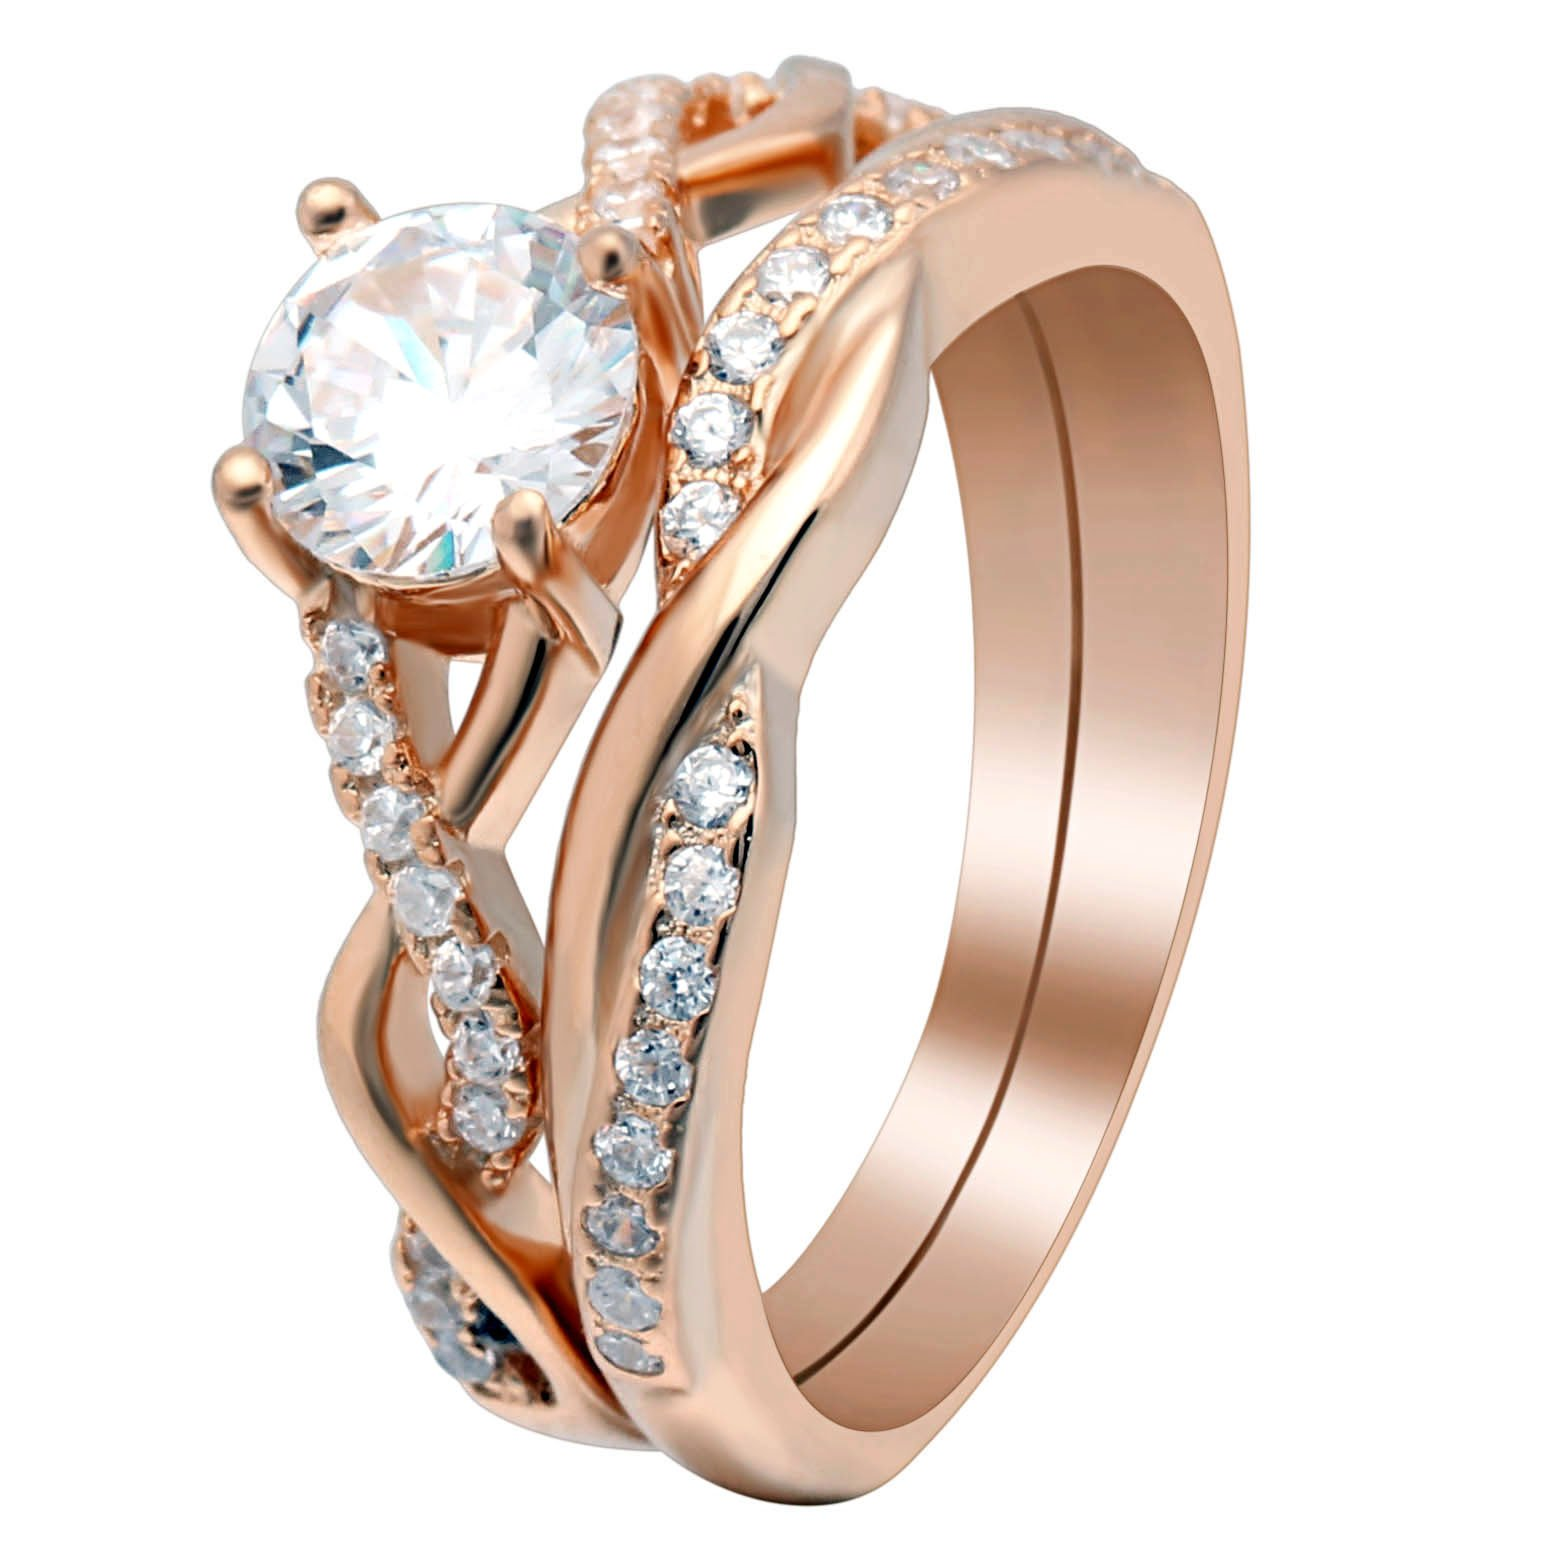 Ginger Lyne Collection Queena Rose Gold Over Sterling Engagement and Wedding Band Ring Set